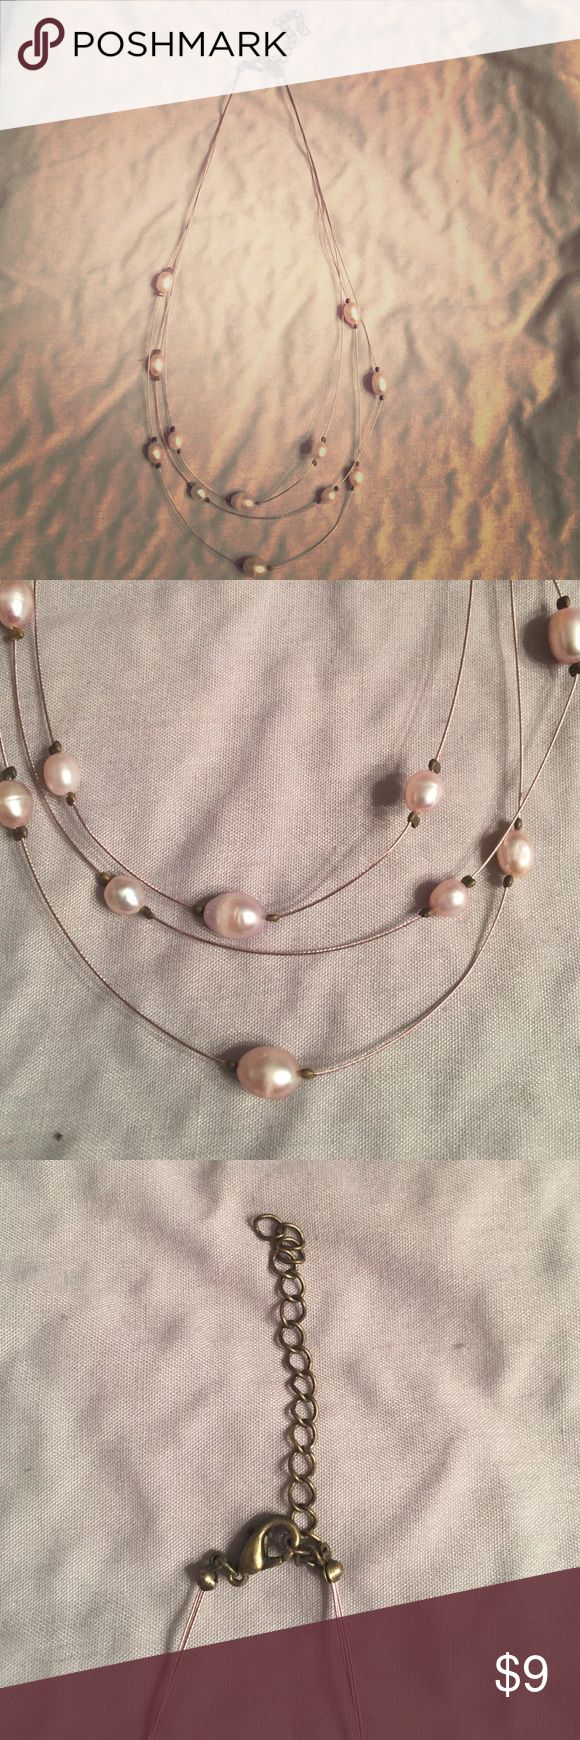 Pearl necklace Never been worn pearl layered necklace with pink wire like chain and adjustable chain hooks super cute to wear with plain outfit! boutique Jewelry Necklaces